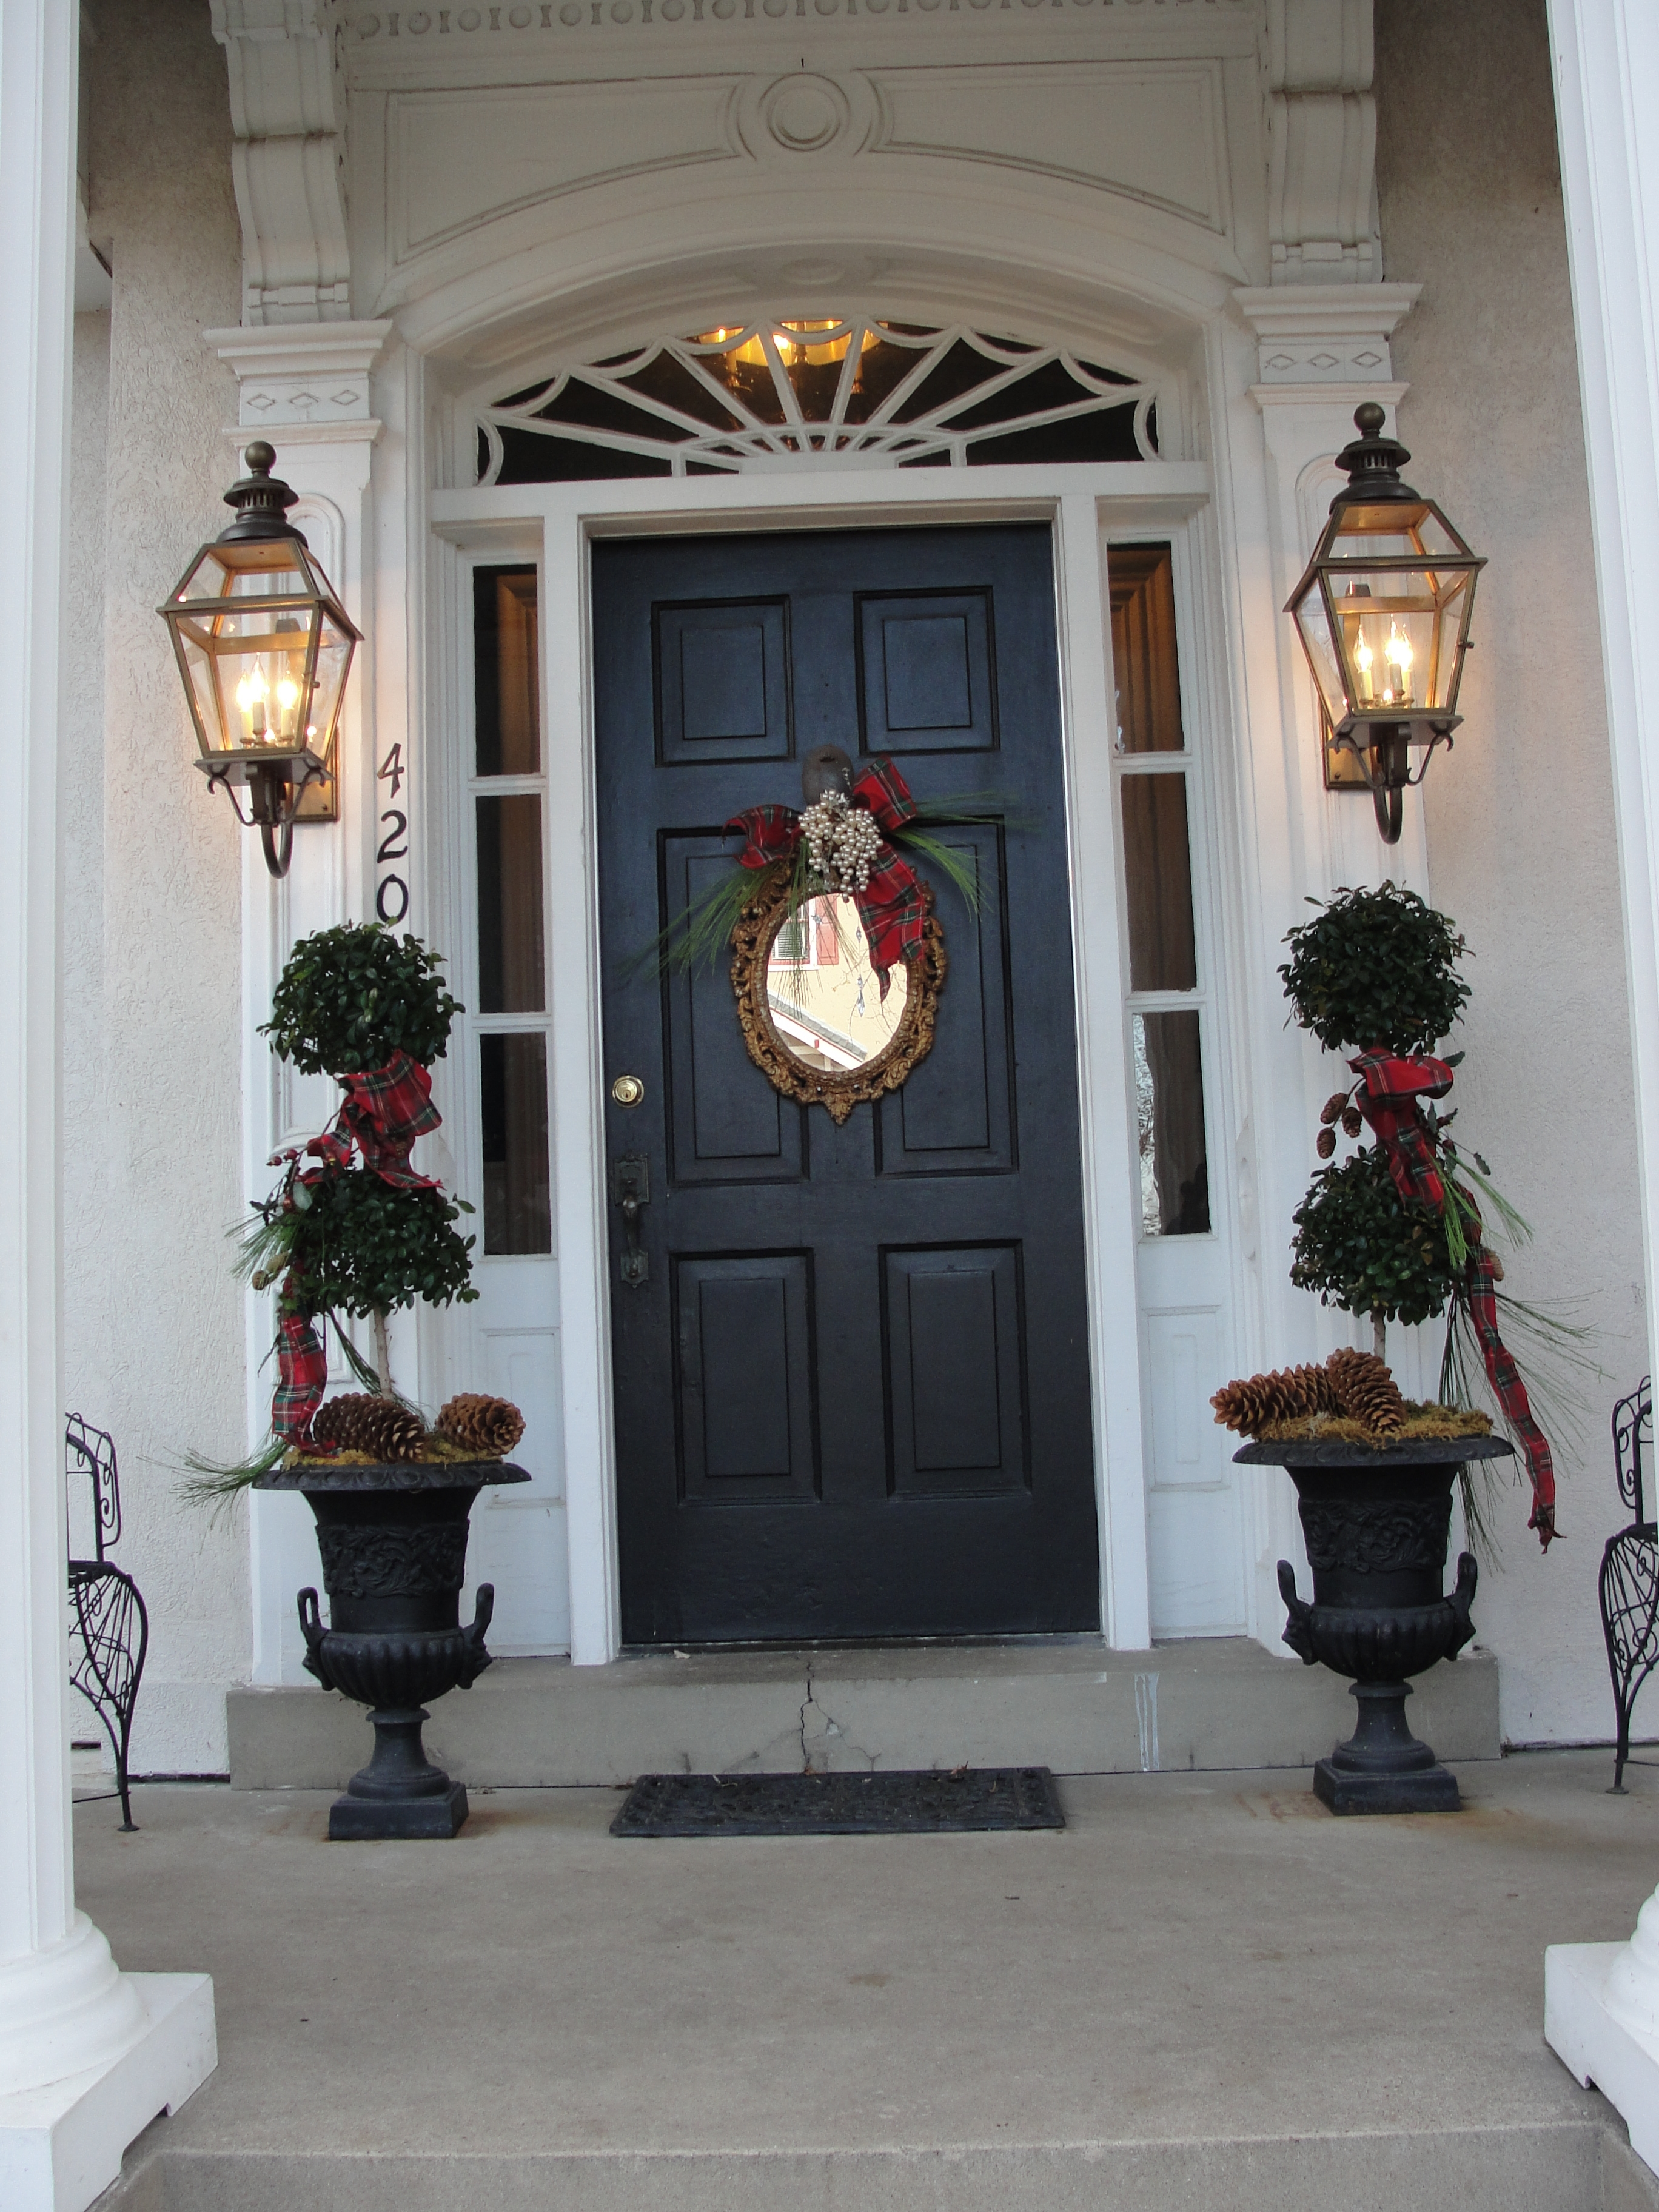 Lanterns Outside Front Door | O2 Pilates intended for Outdoor Lanterns For Front Door (Image 13 of 20)